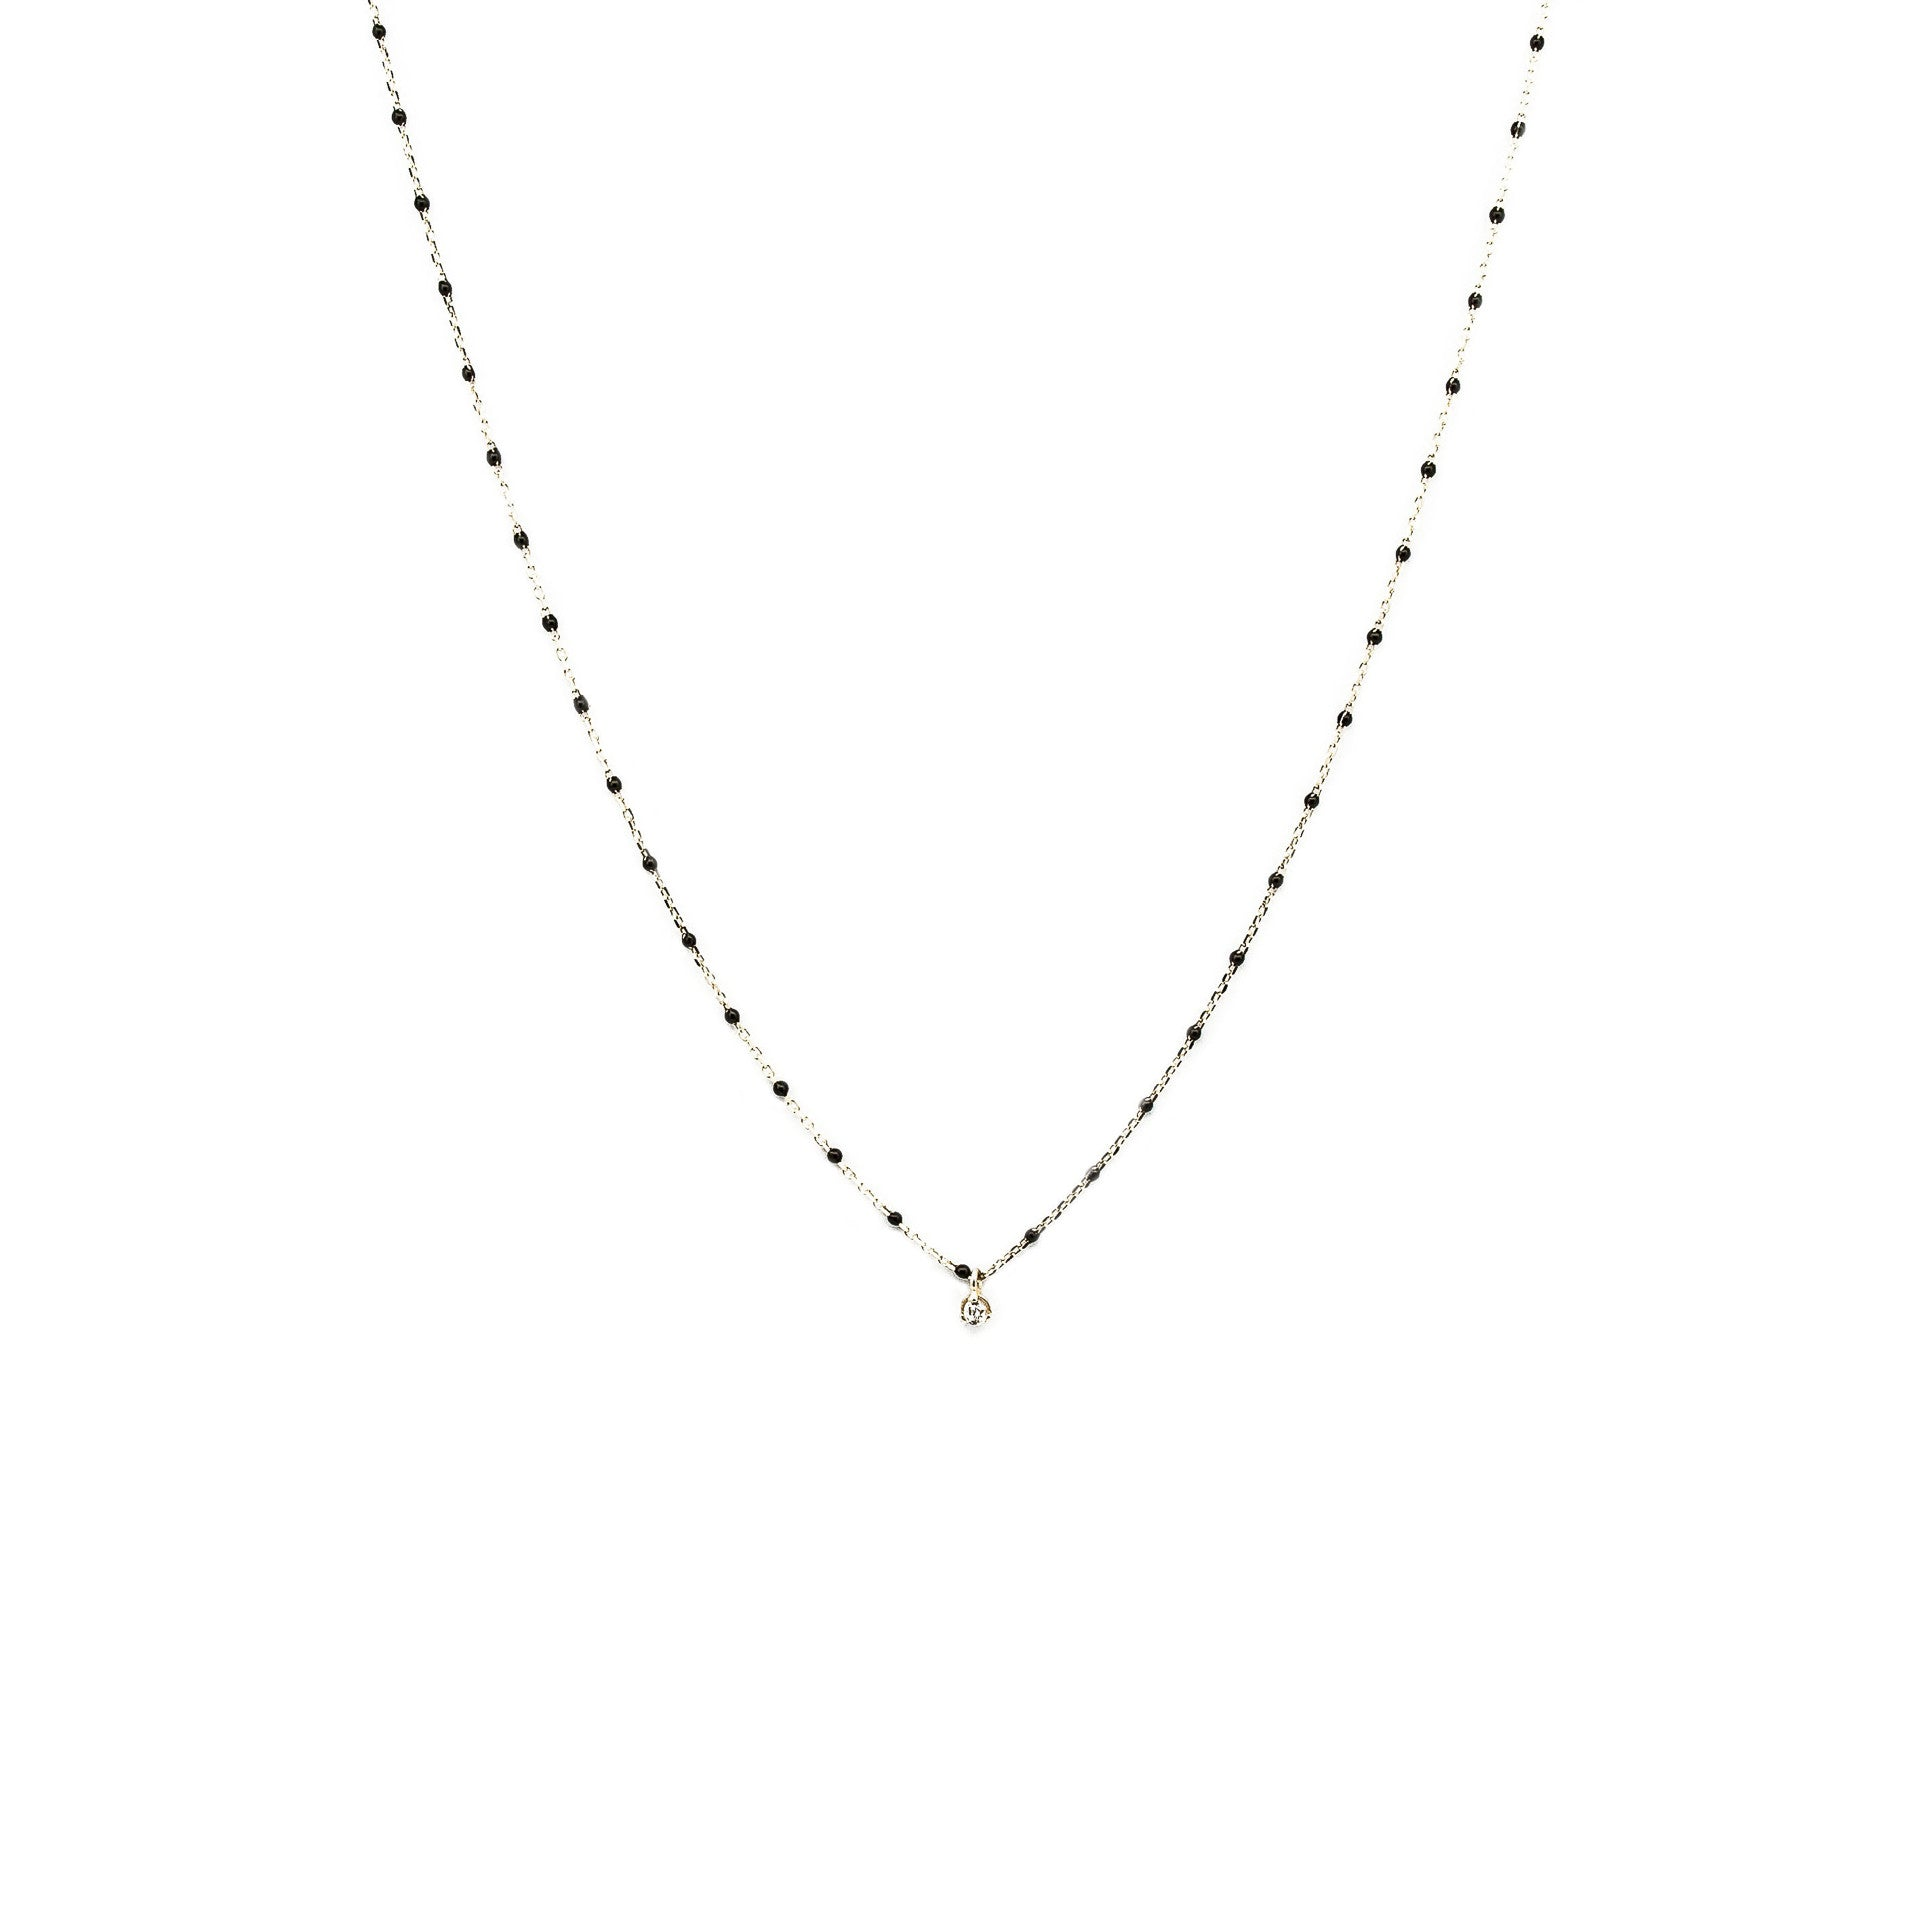 STERLING SILVER ENAMEL BEADED NECKLACE WITH CZ (BLACK)